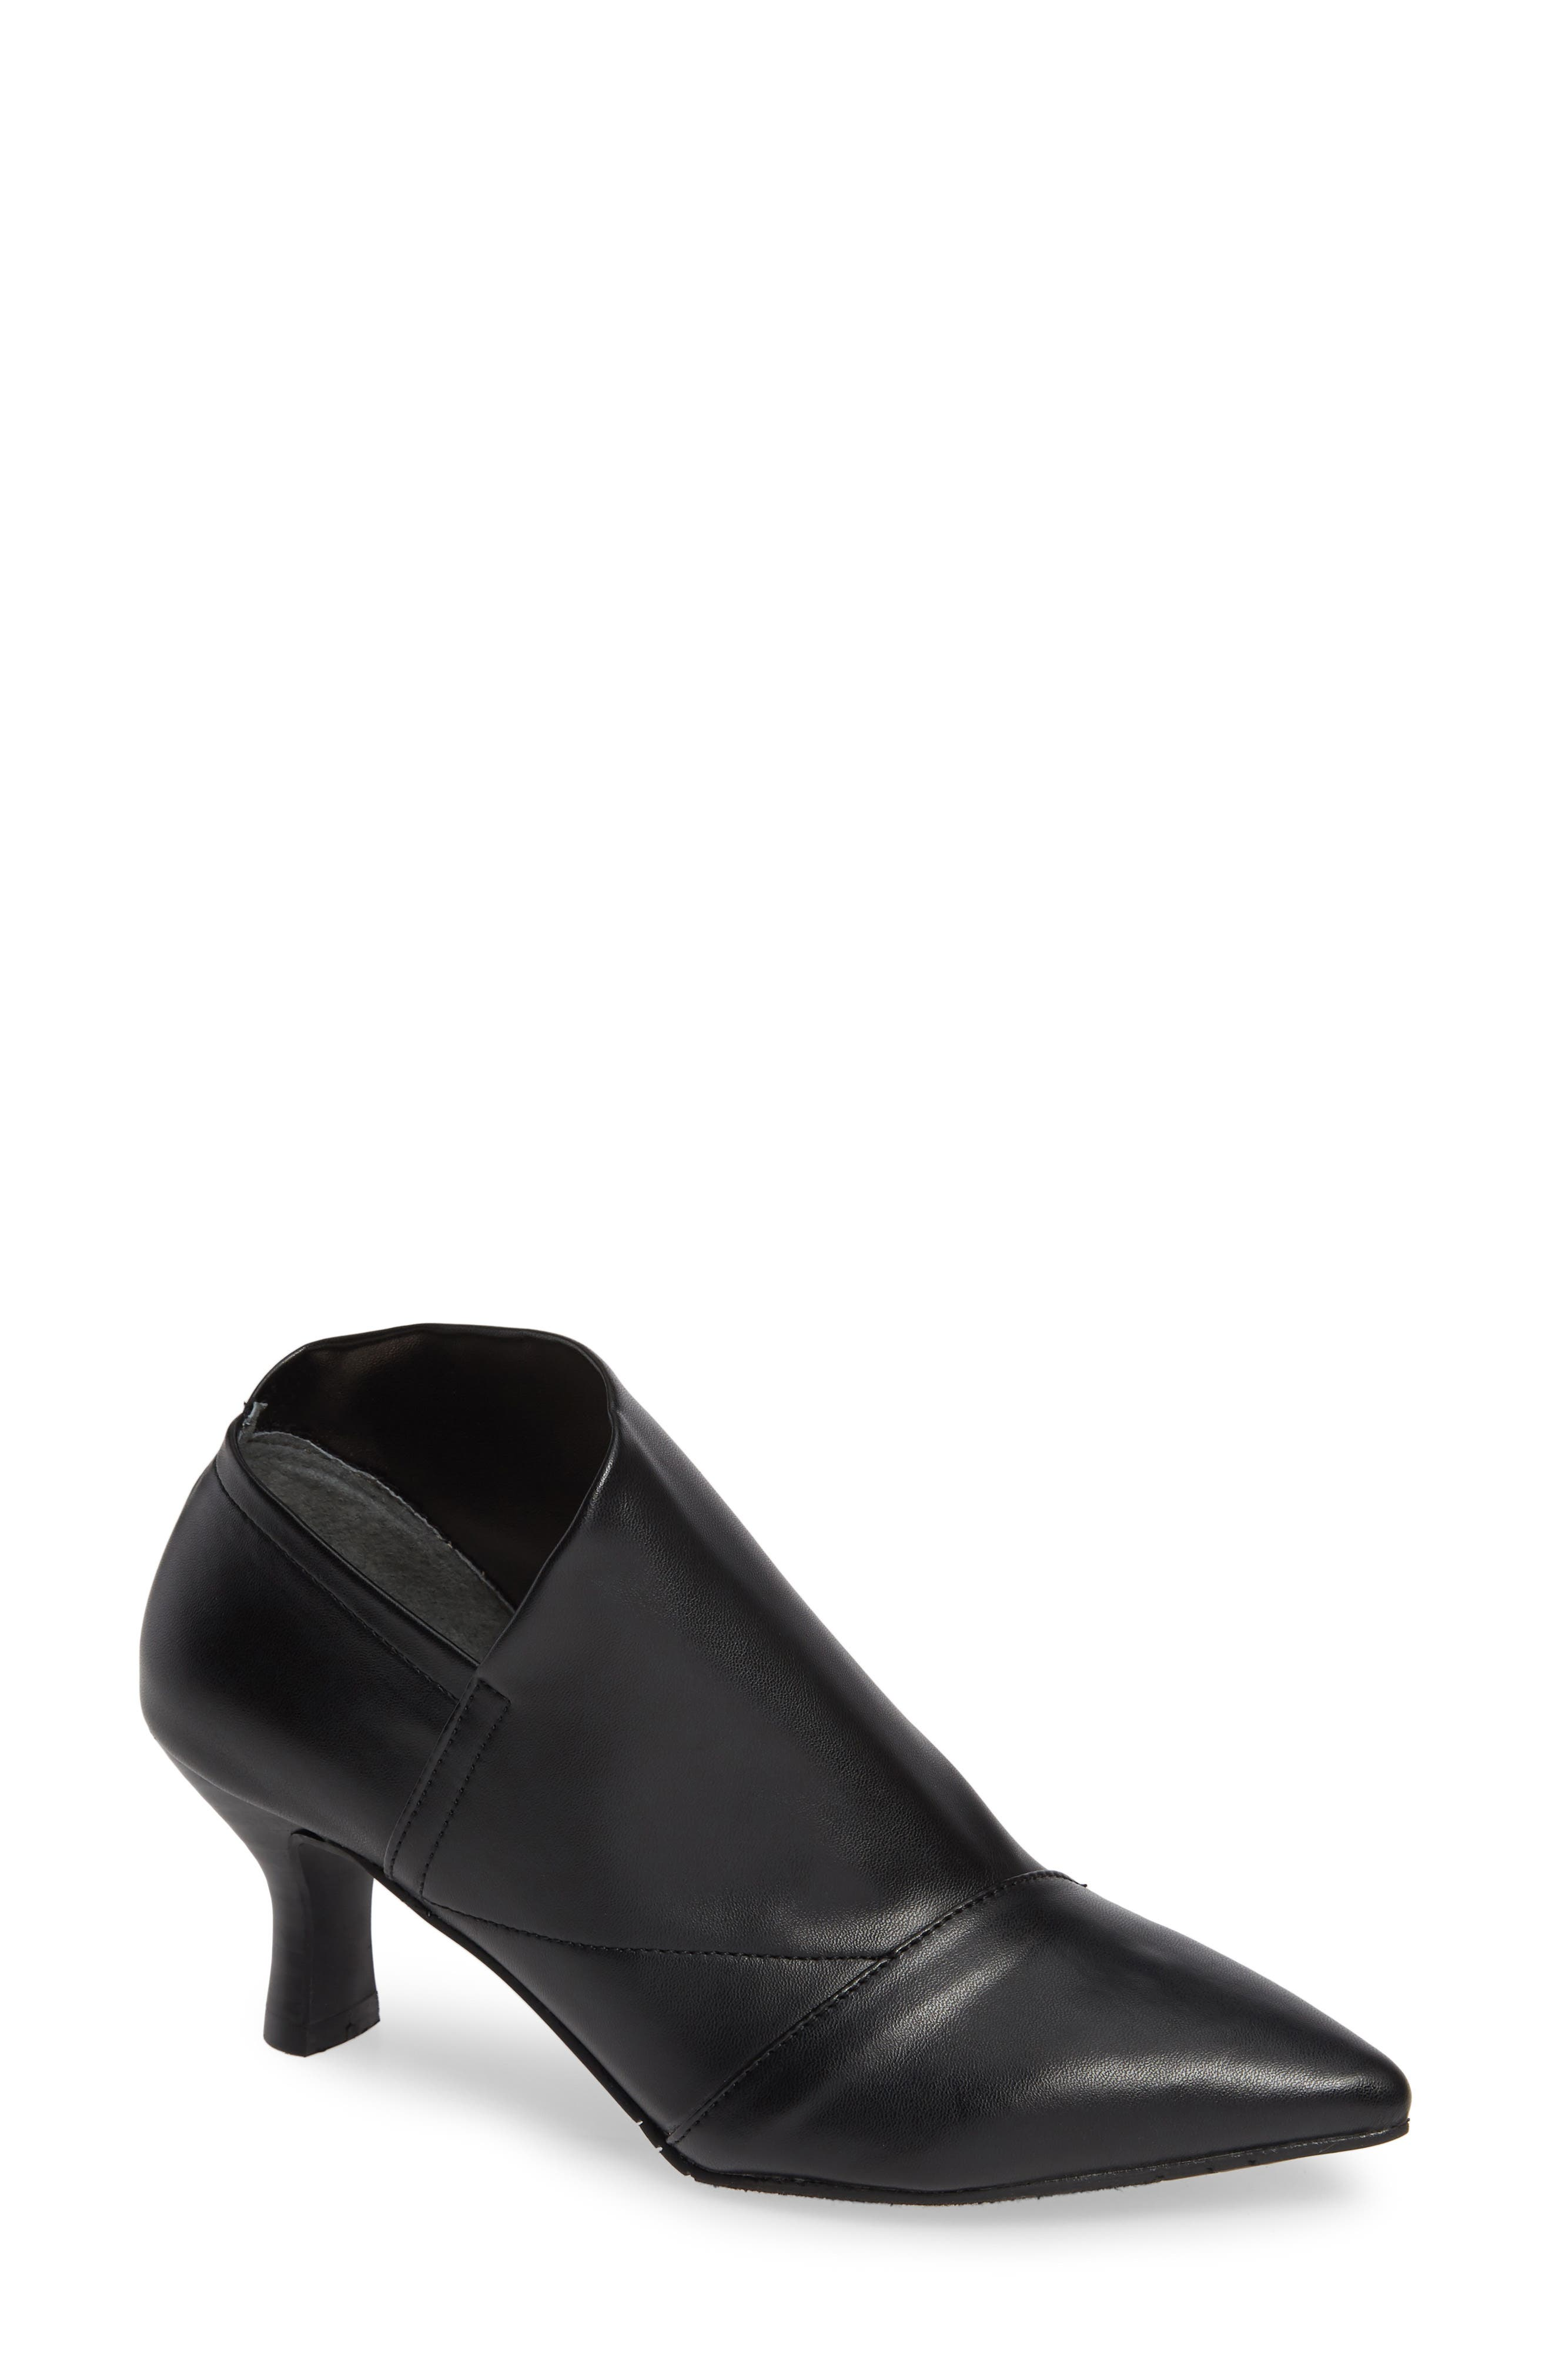 Hayes Pointy Toe Bootie in Black Leather